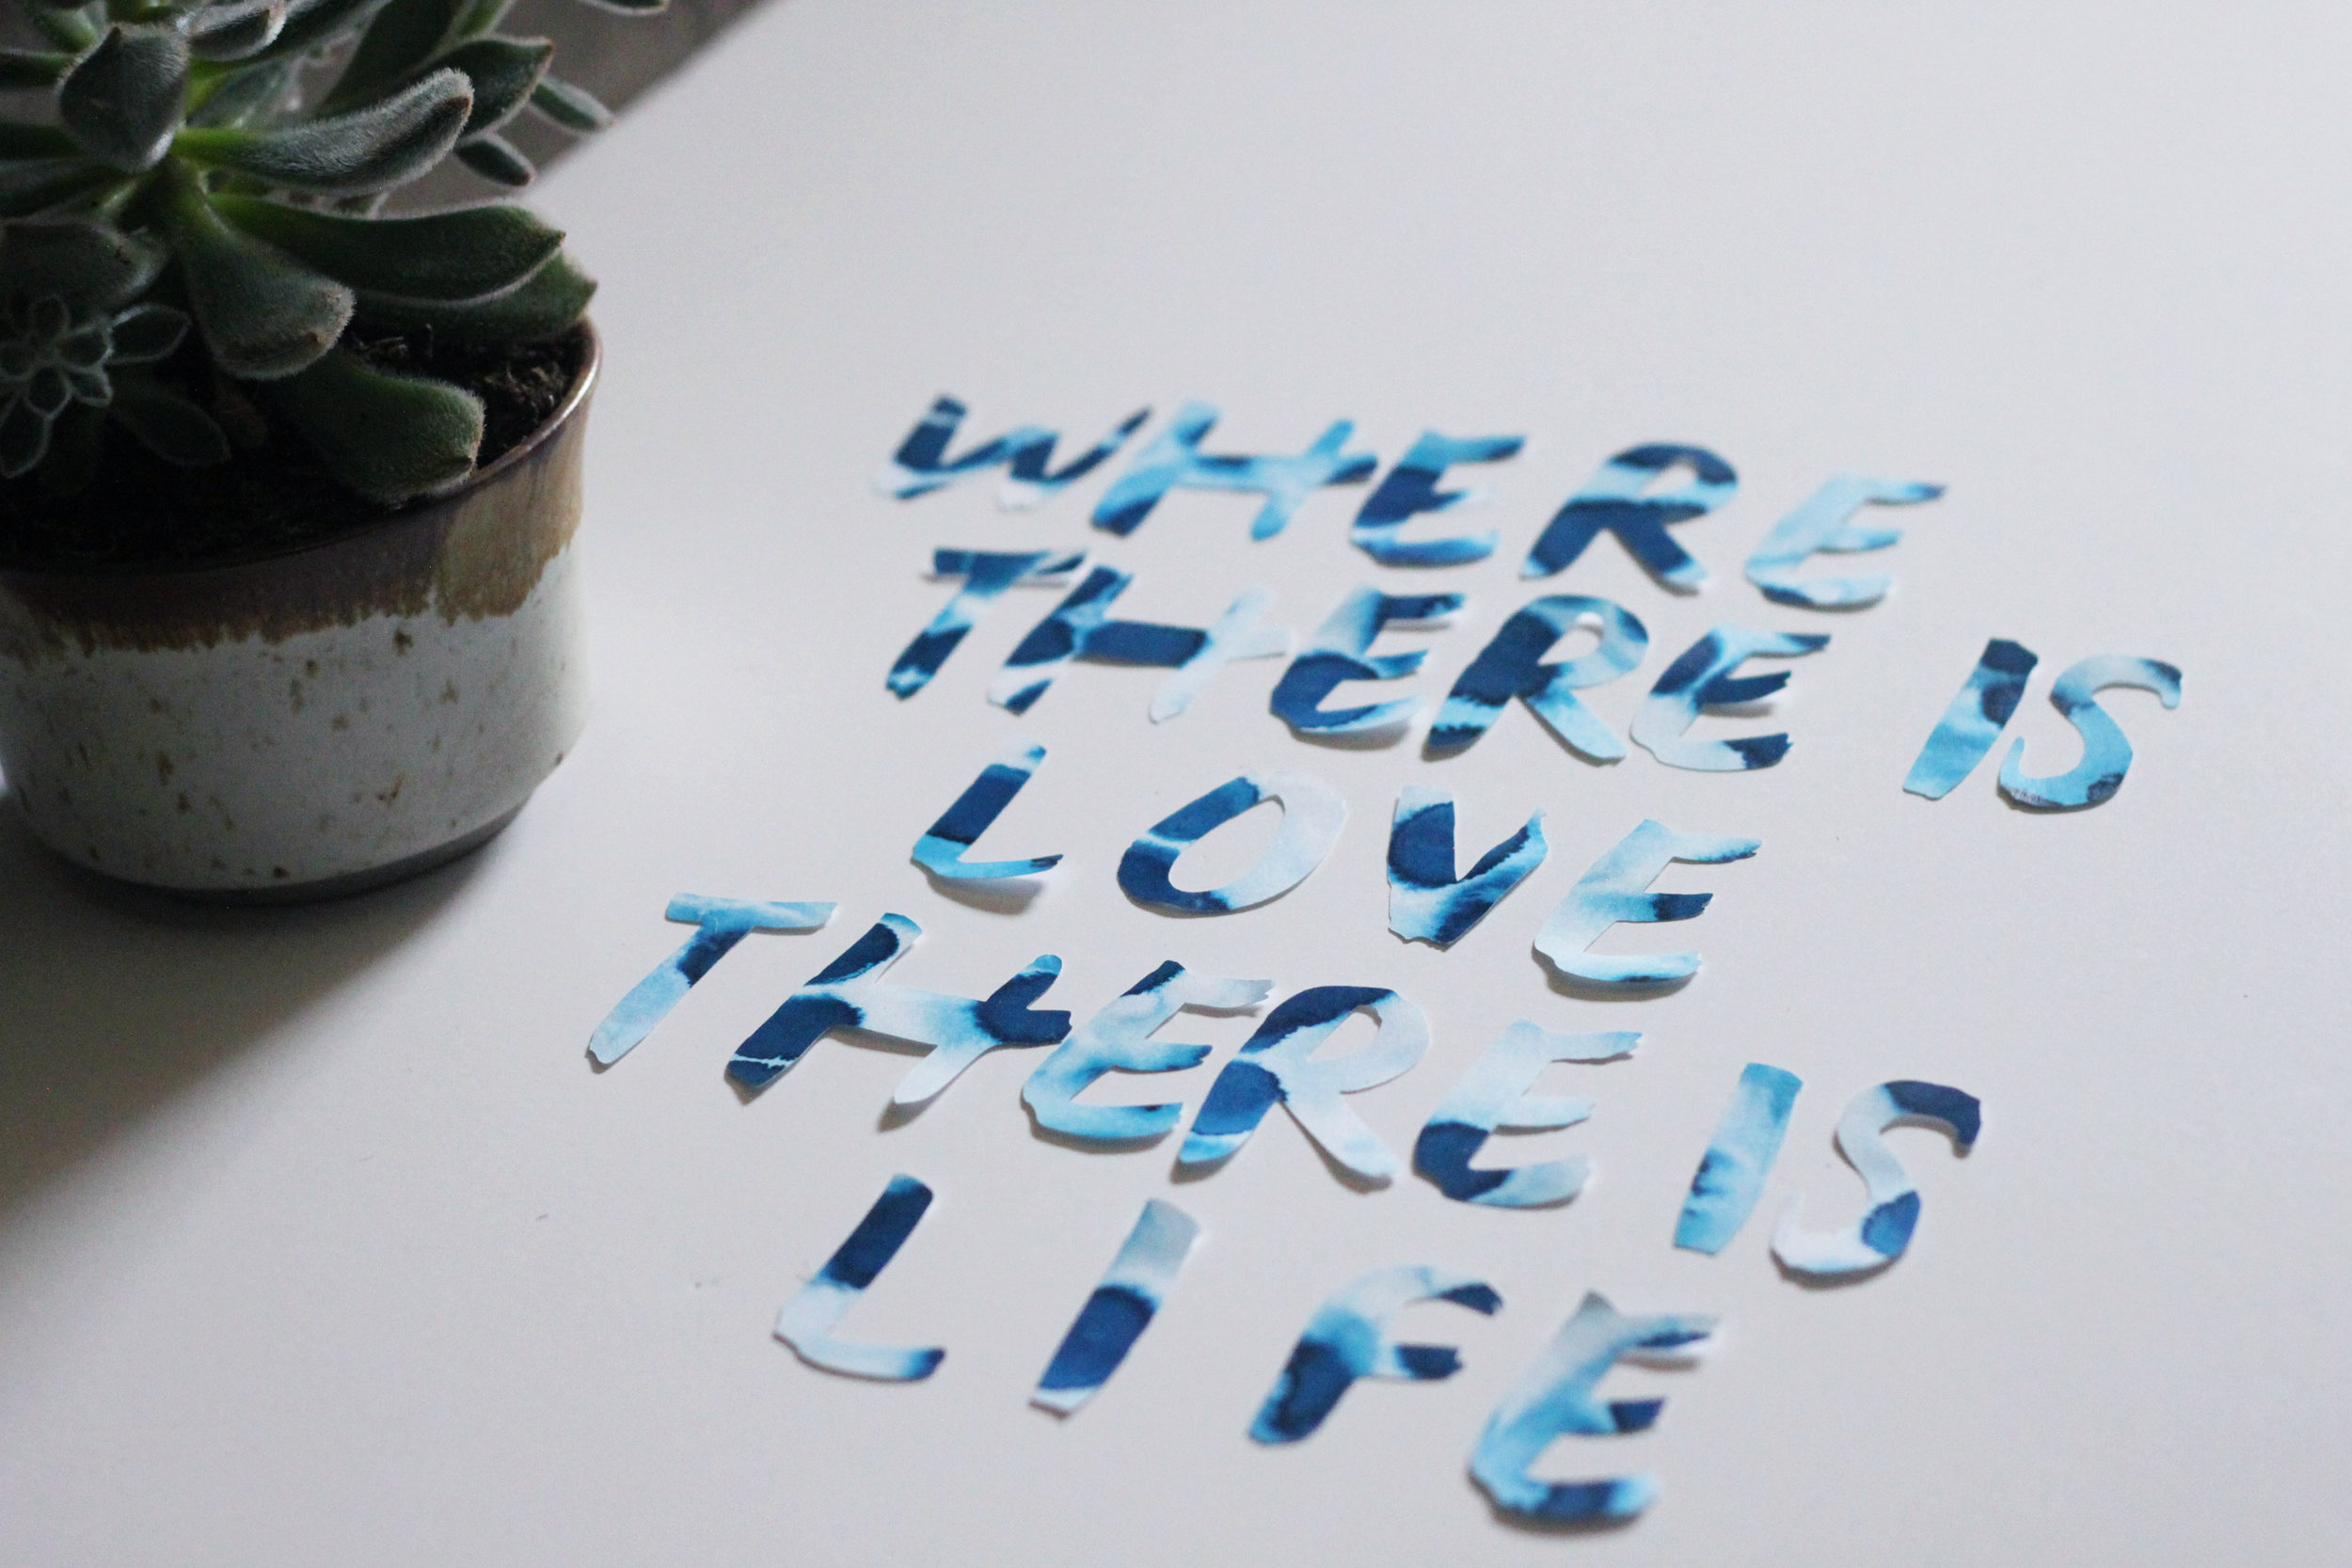 Make Your Own Hand Lettered Art with a Cricut | Sycamore